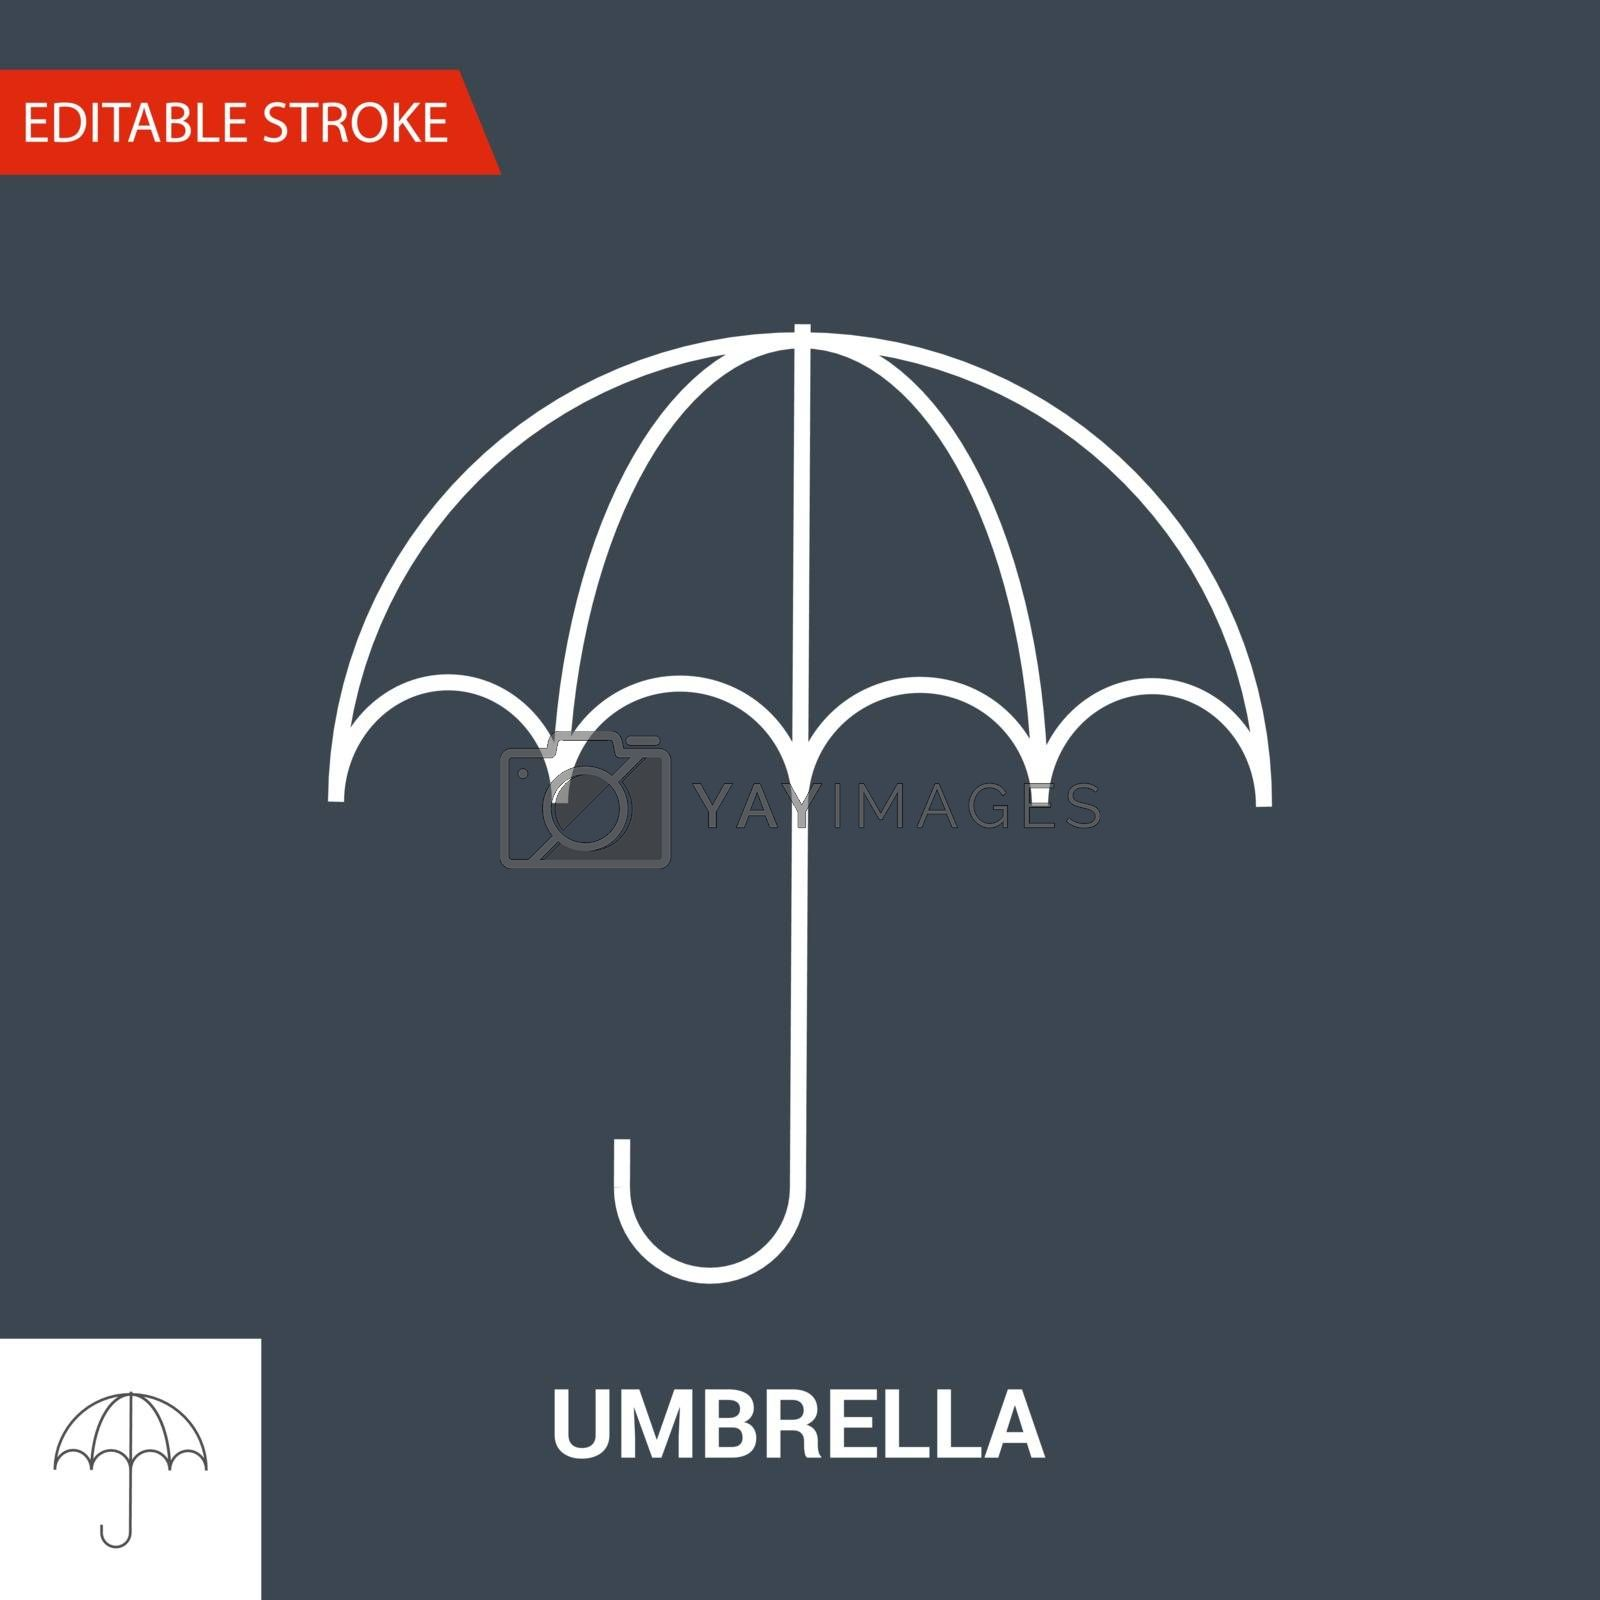 Umbrella Icon. Thin Line Vector Illustration. Adjust stroke weight - Expand to any Size - Easy Change Colour - Editable Stroke